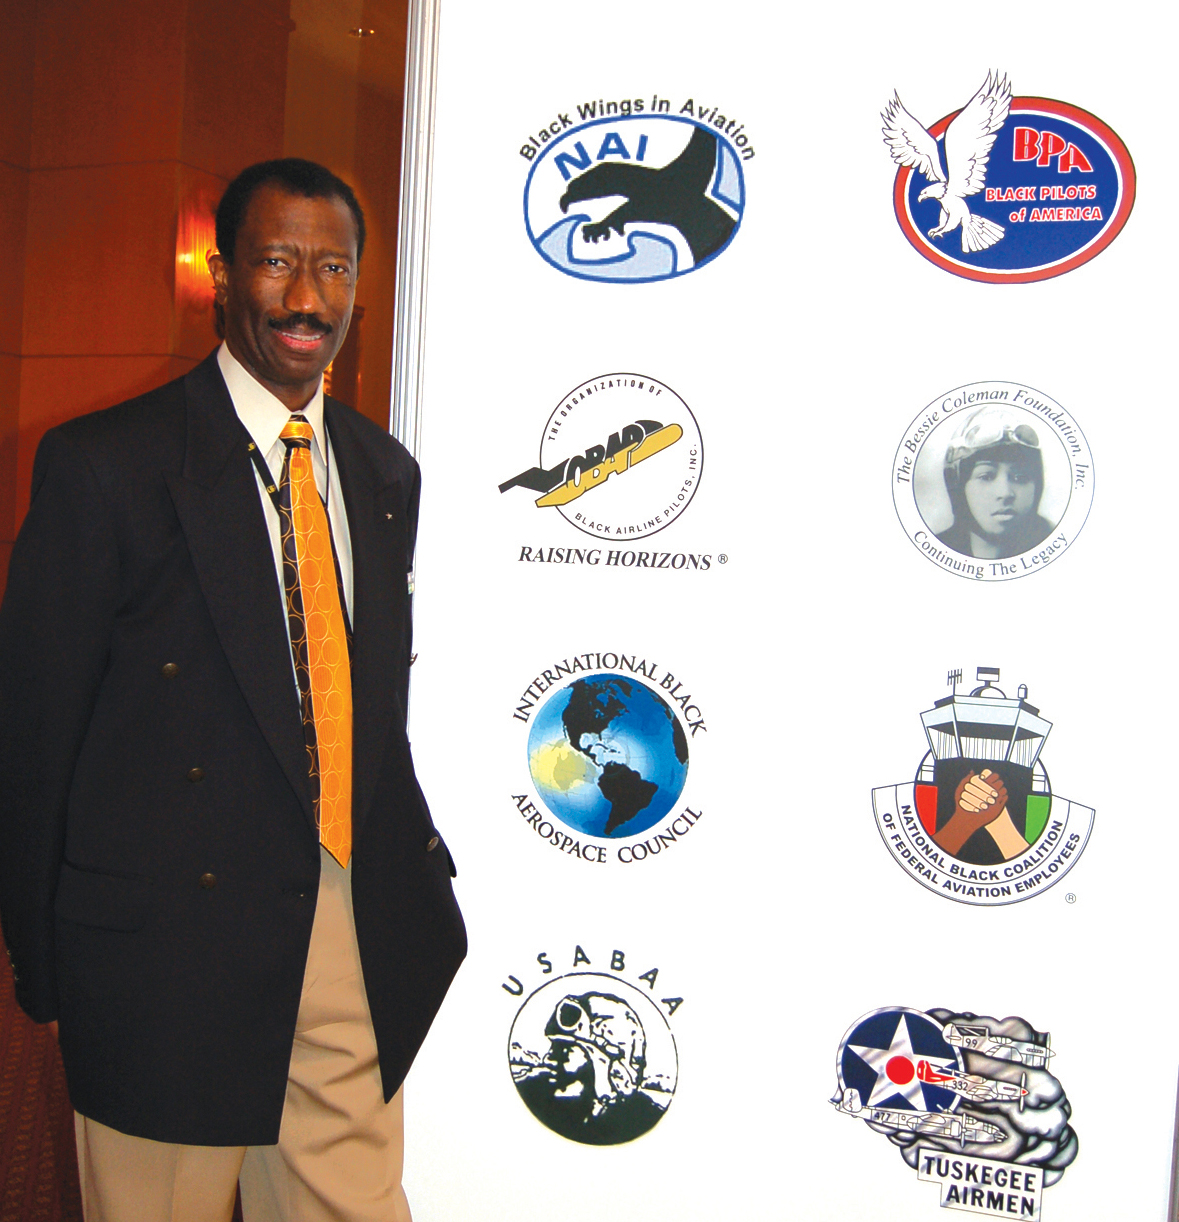 The 2006 Tuskegee Airmen National Convention Comes to the Valley of the Sun